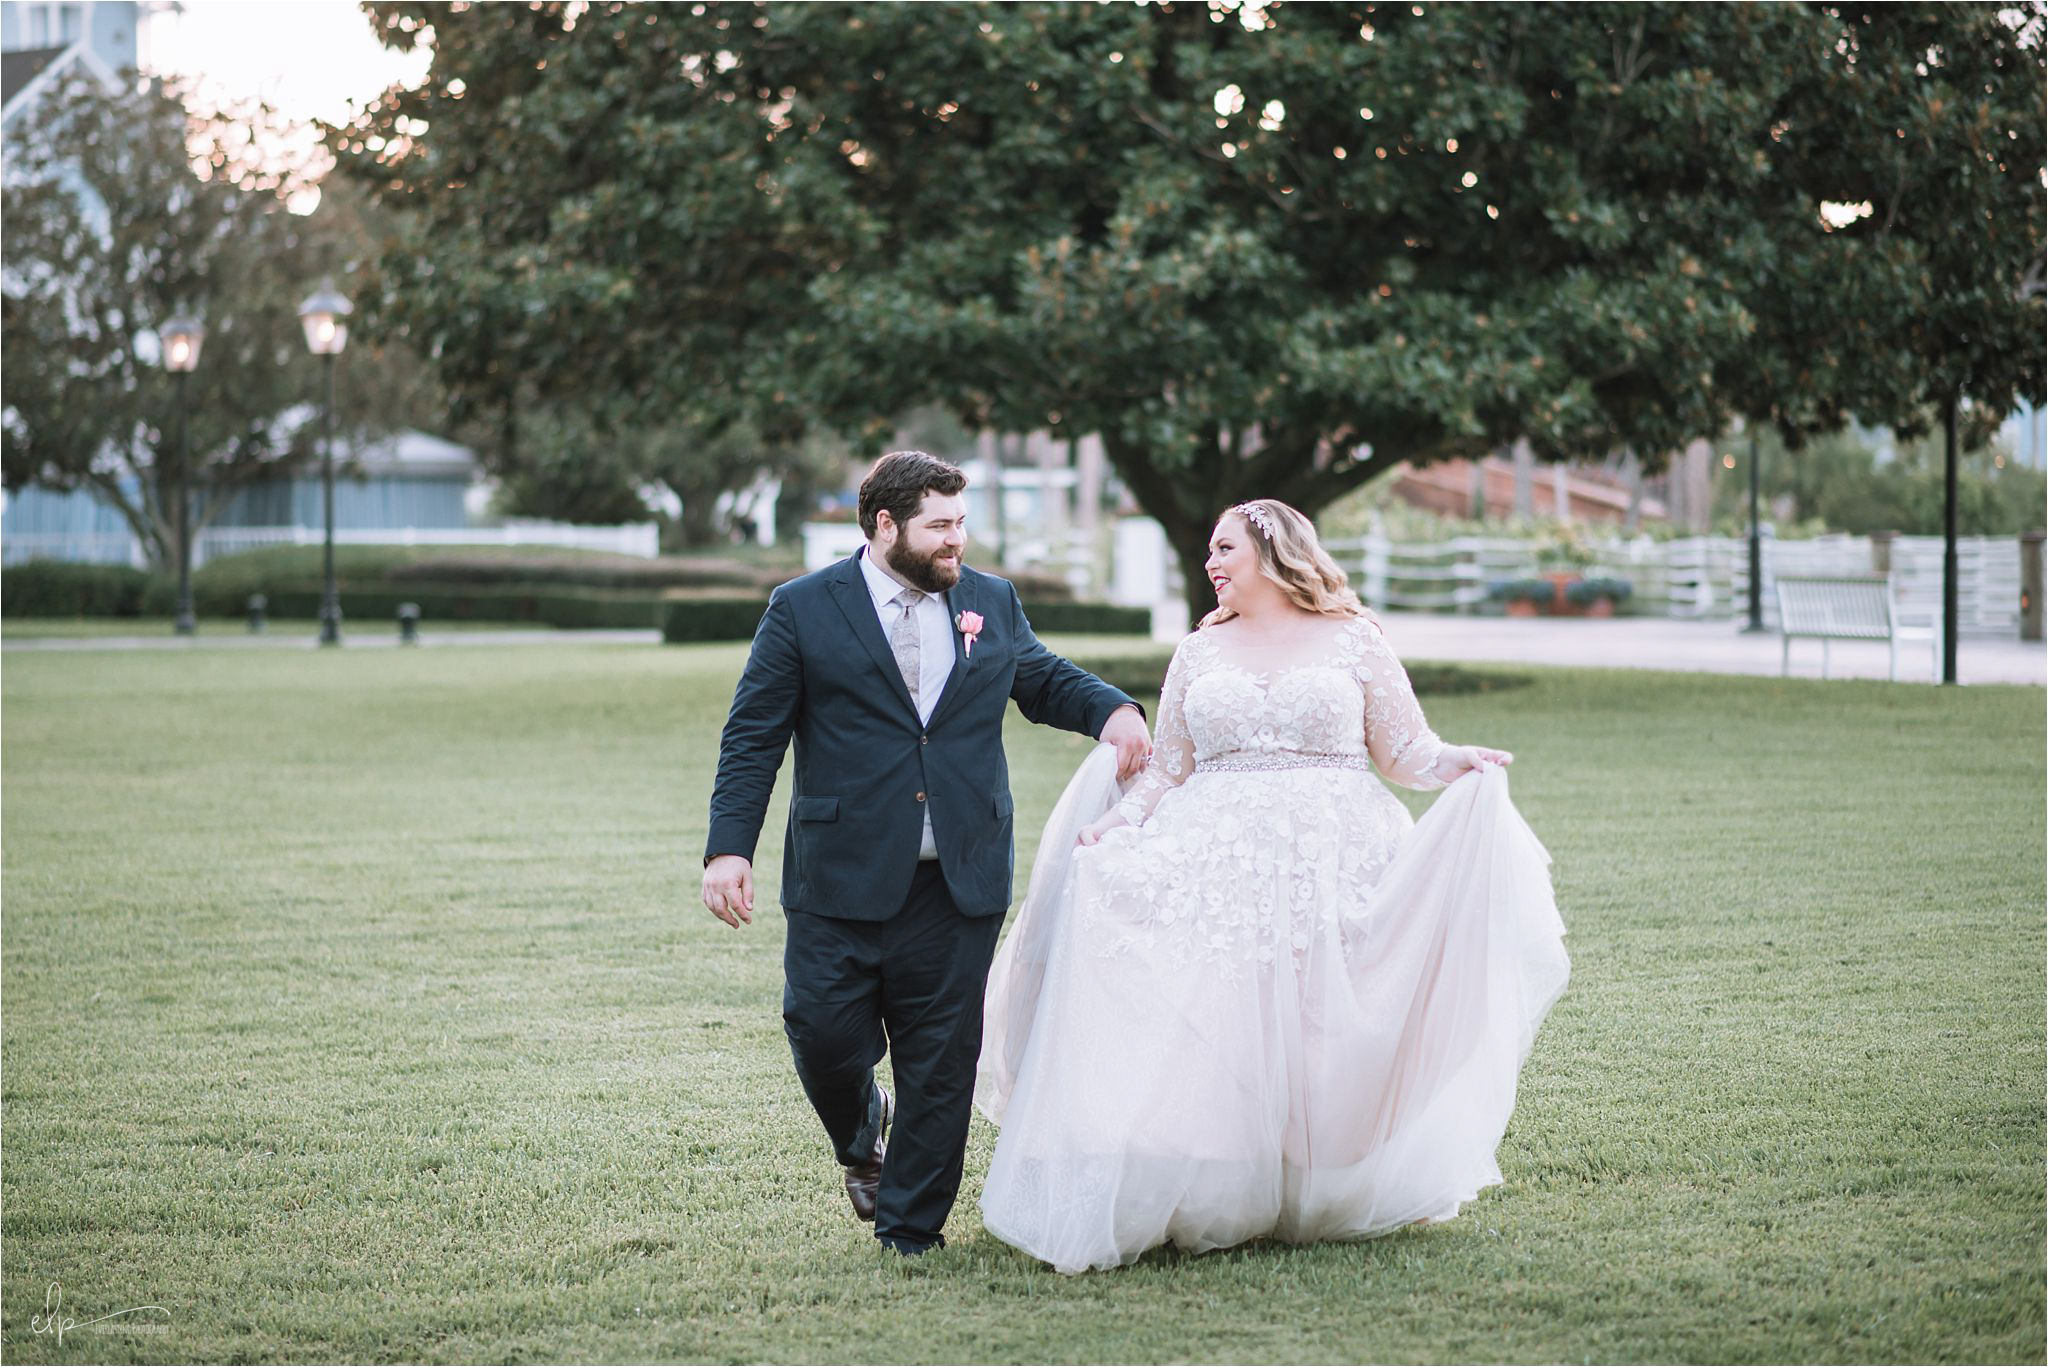 Orlando's top photoshoot places for weddings